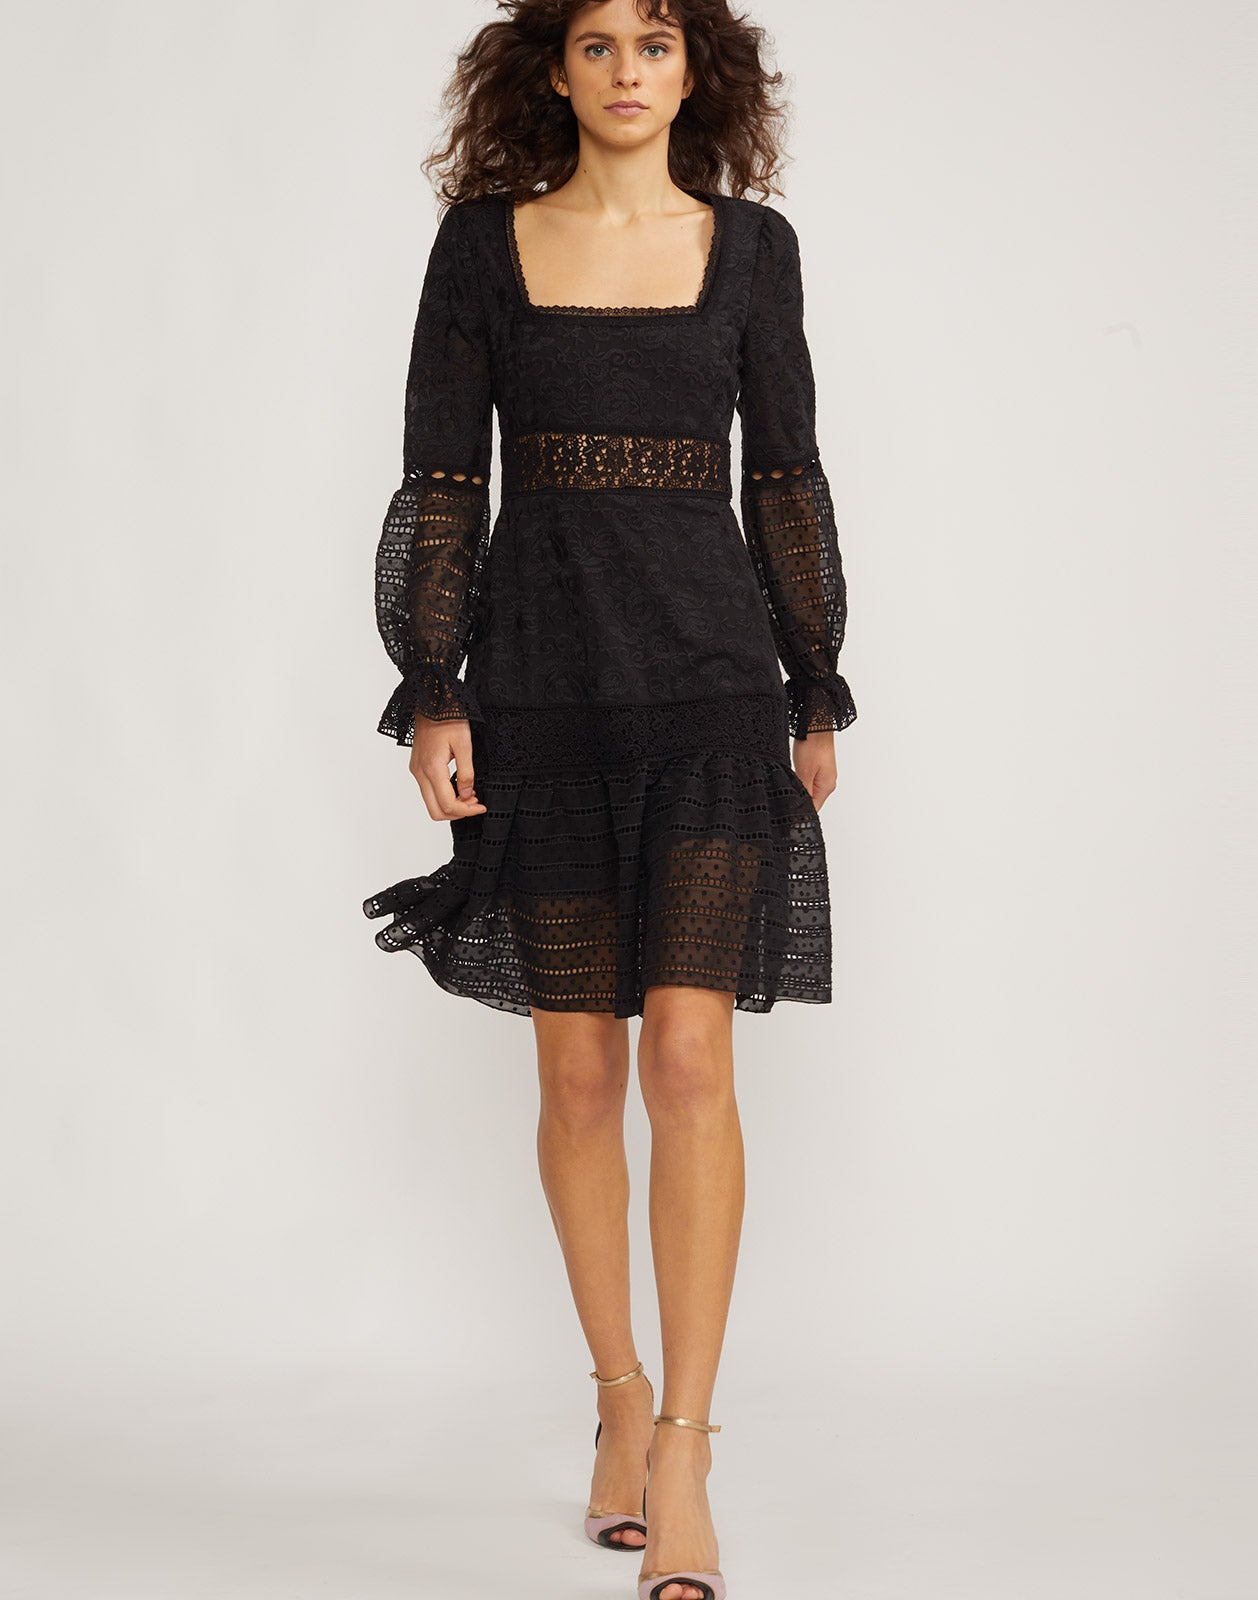 Front view of model wearing Wicker Park Lace Eyelet dress.